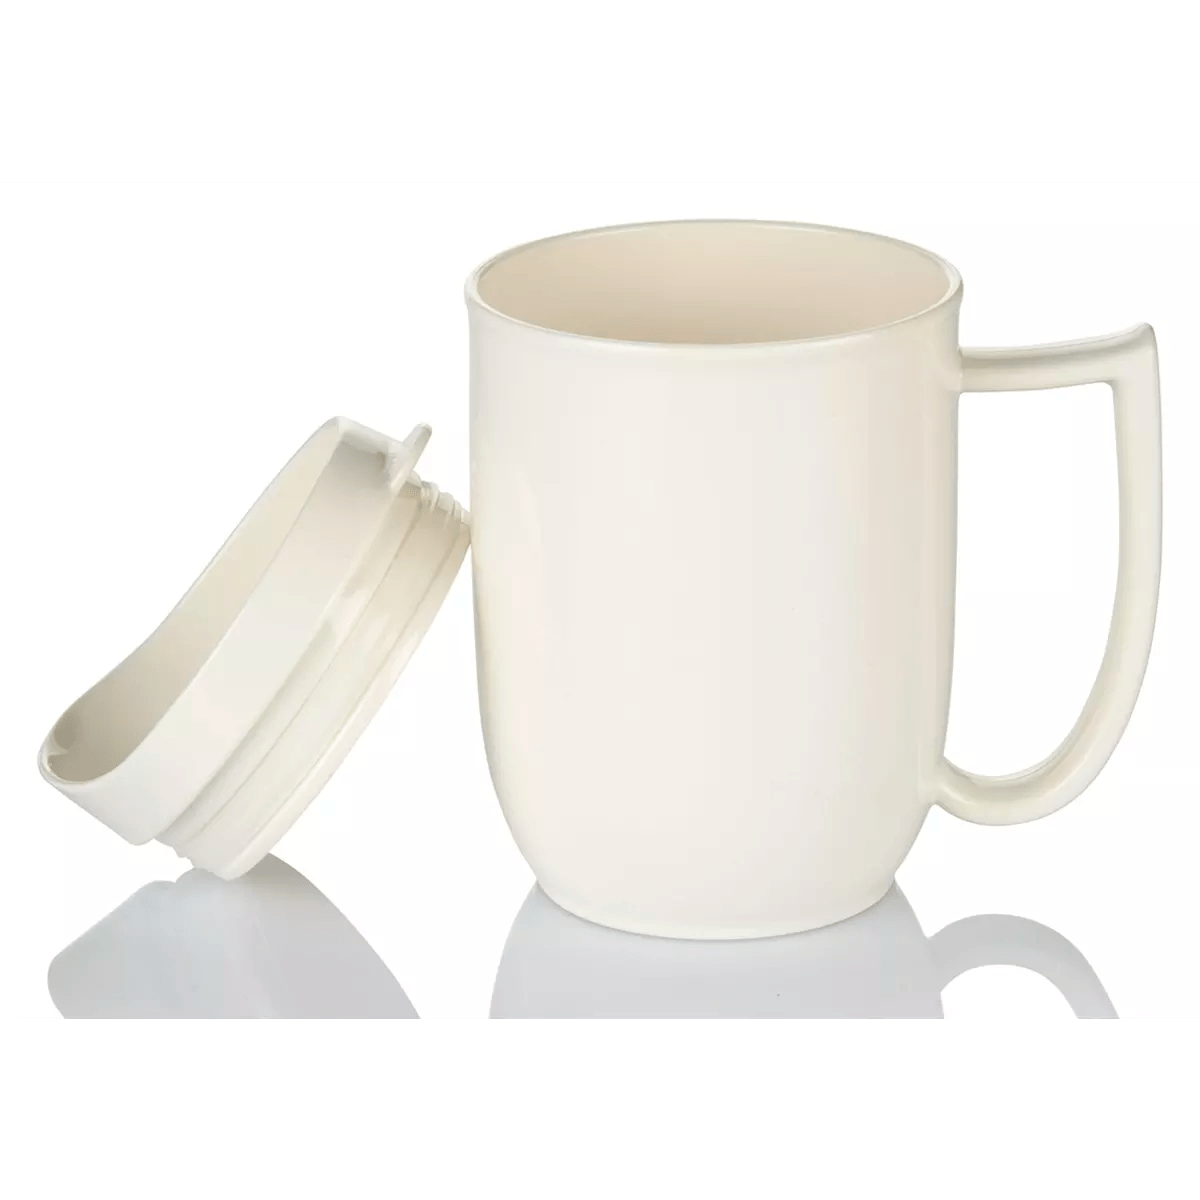 Large Handle Mugs Unbreakable Mug With Feeder Lid And Large Handle For